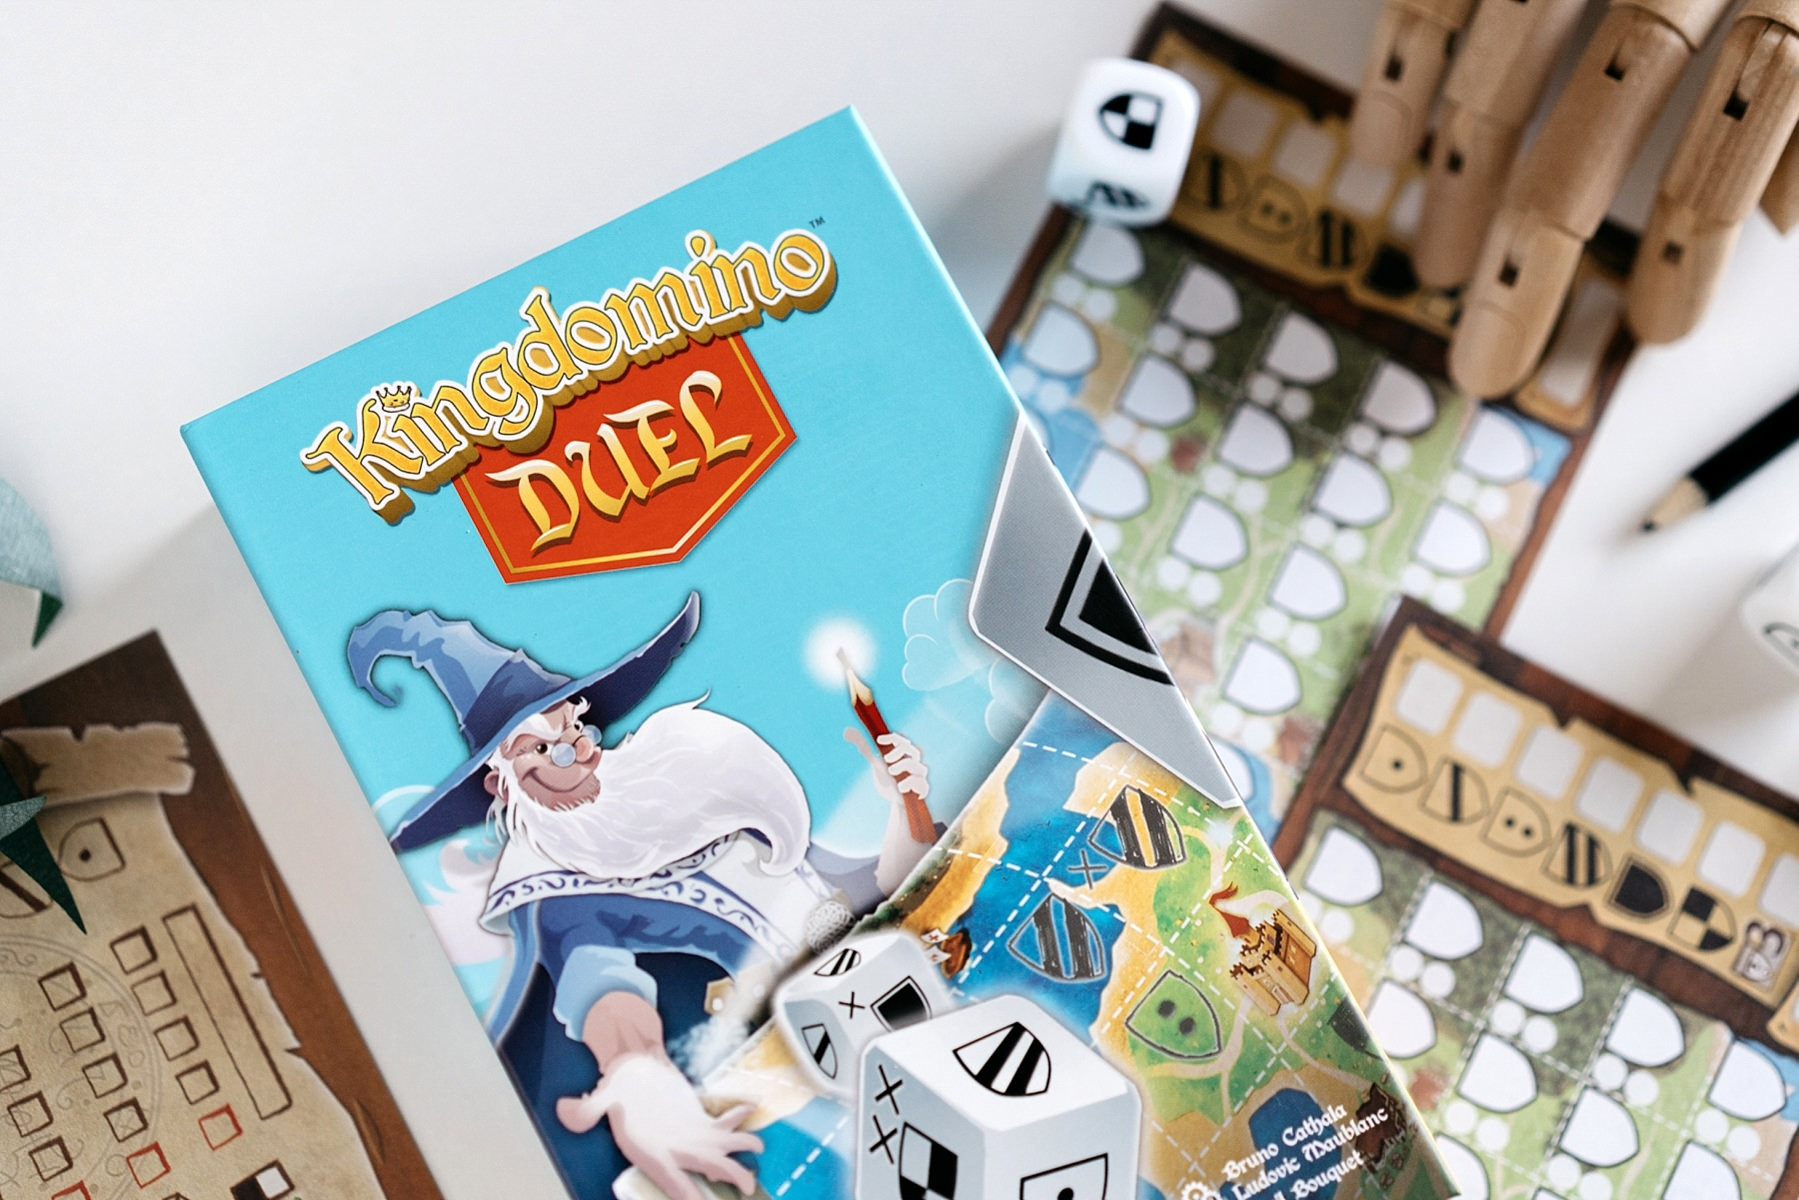 kingdomino duel blue orange